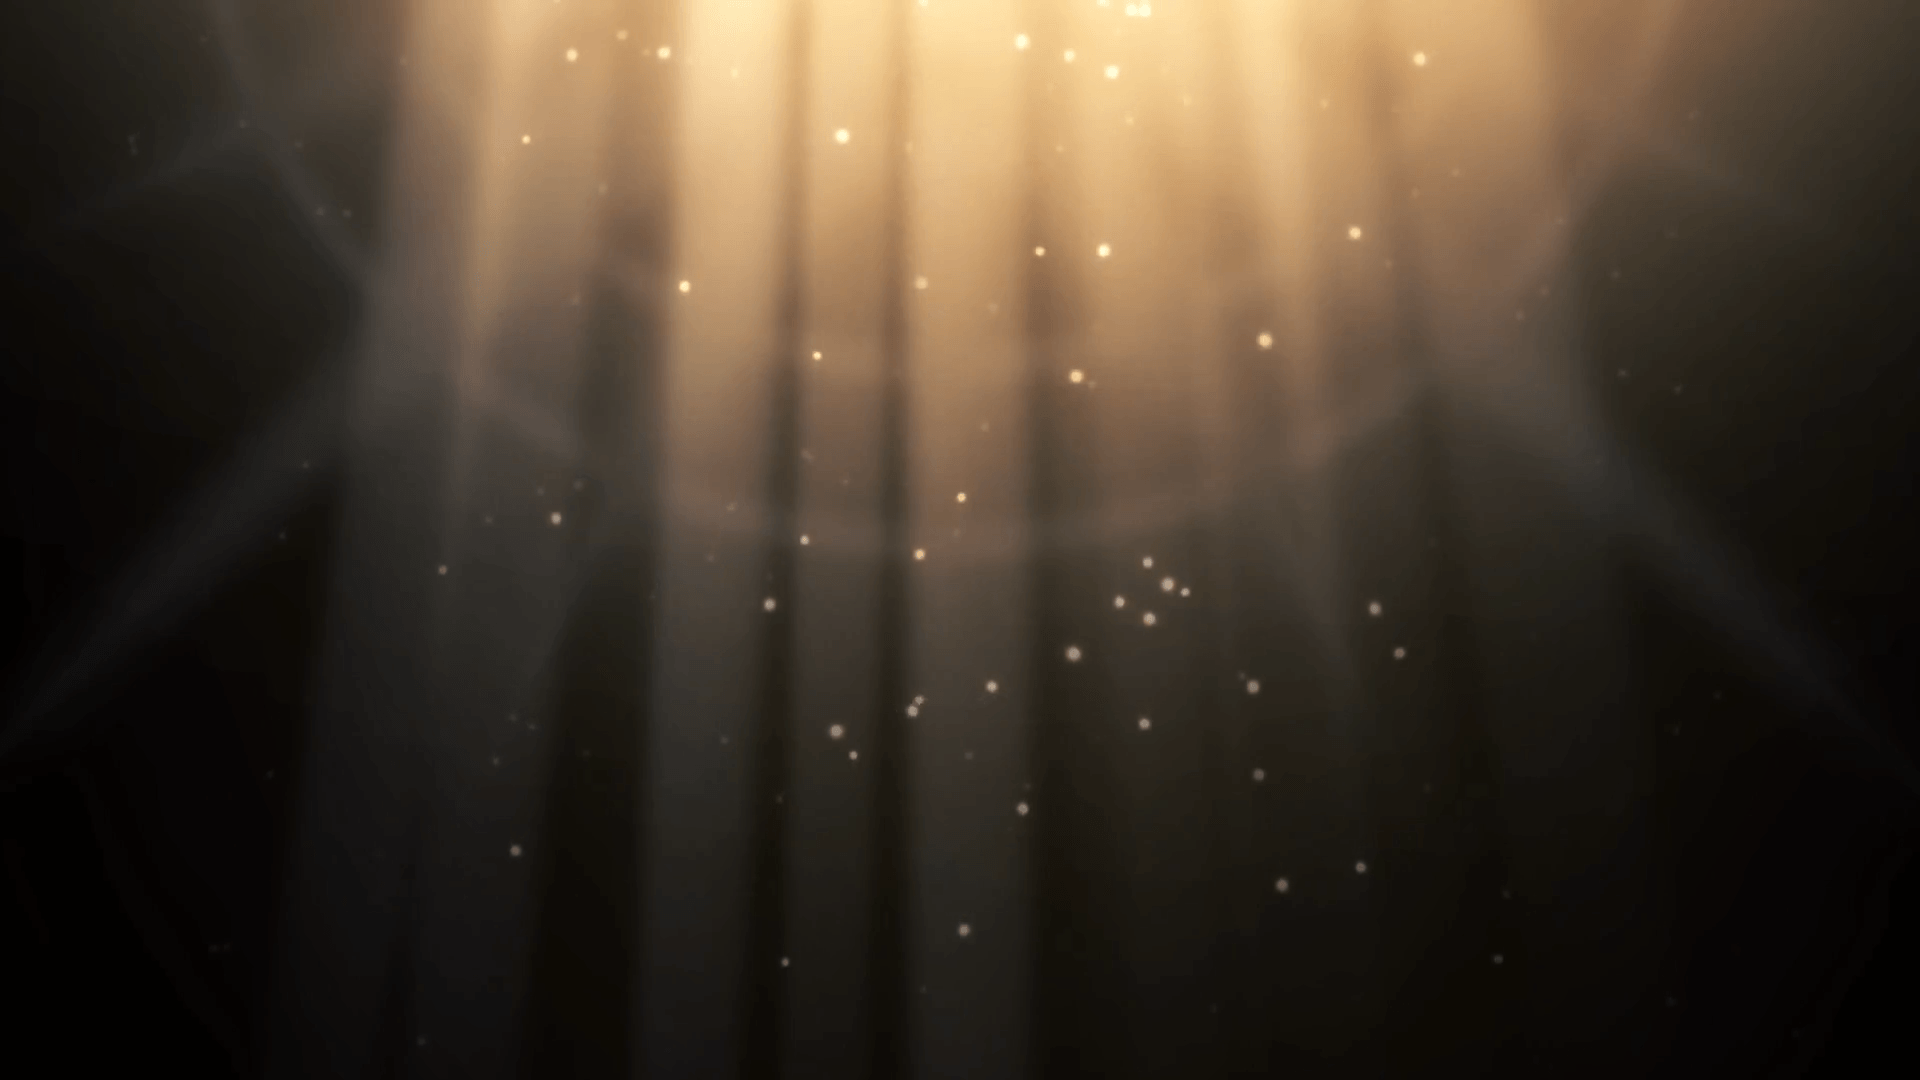 One of the backgrounds from the title screen of Hollow Knight, a dark yellow landscape with a light coming from the top, almost resembling a spotlight.